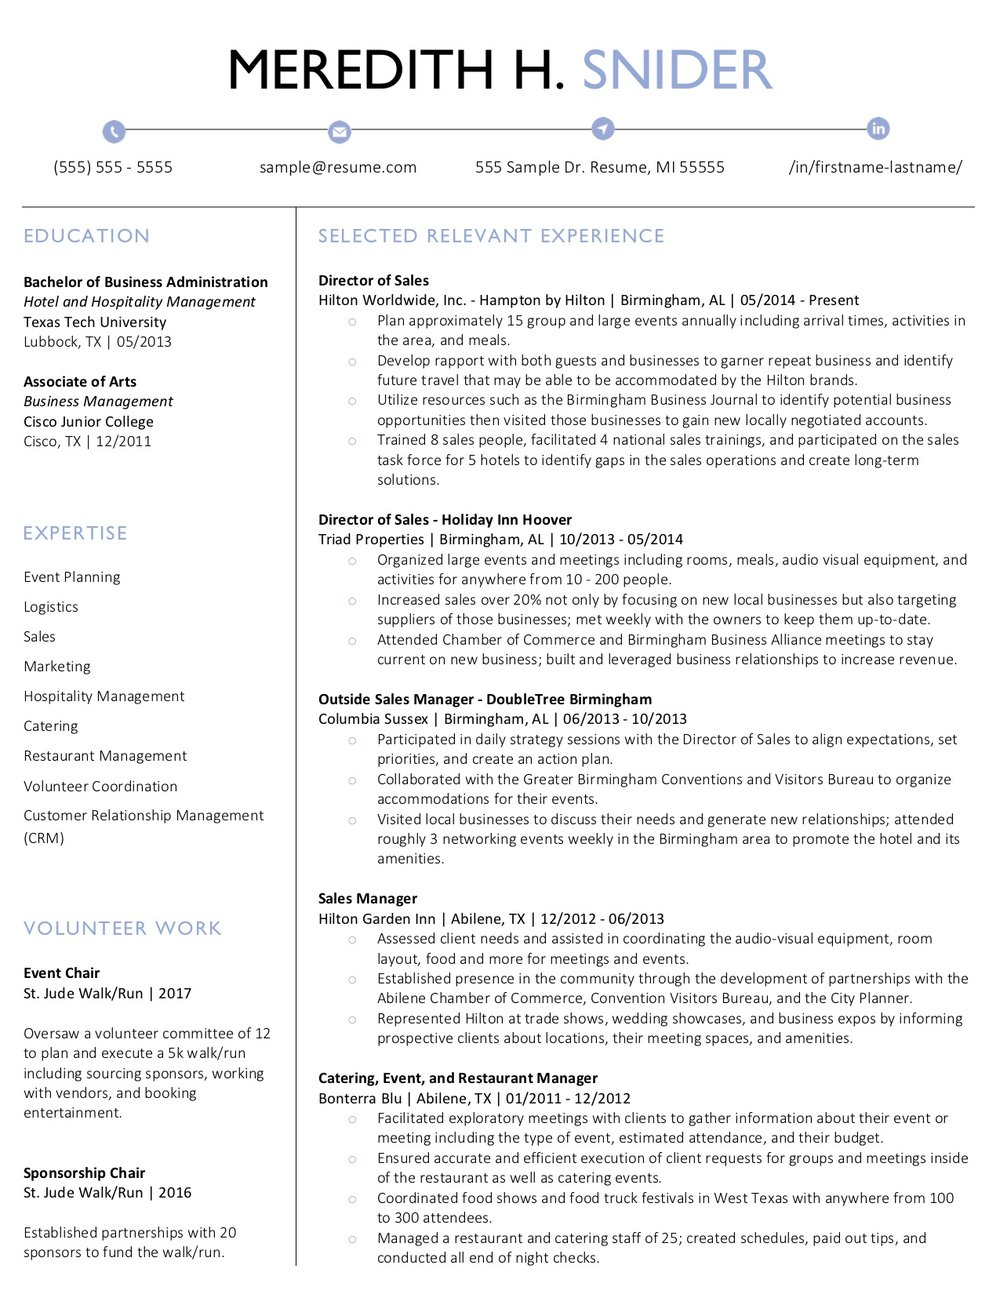 Client Resume #22. Click to enlarge.